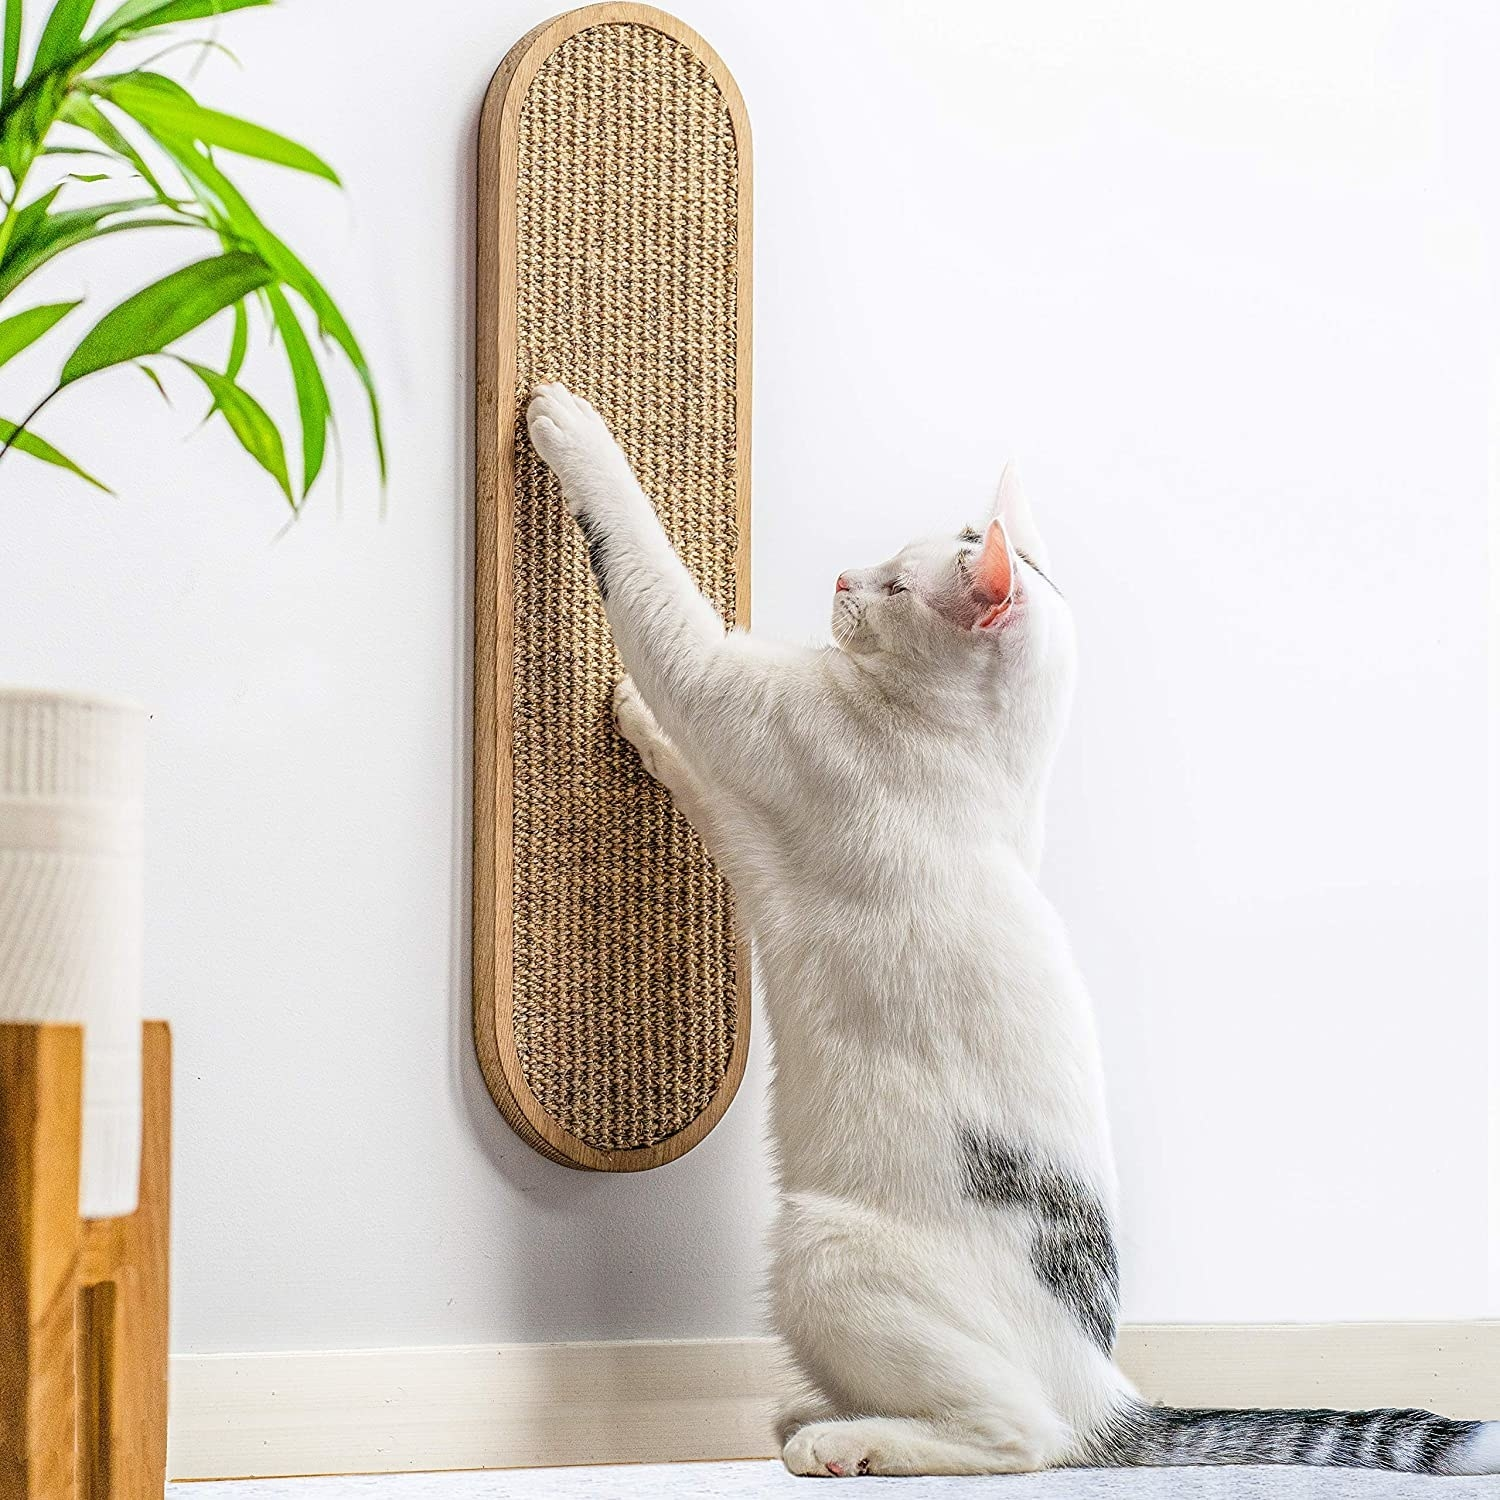 white cat with a grey spot on its back scratching an oval shaped scratch pad that is mounted to a wall